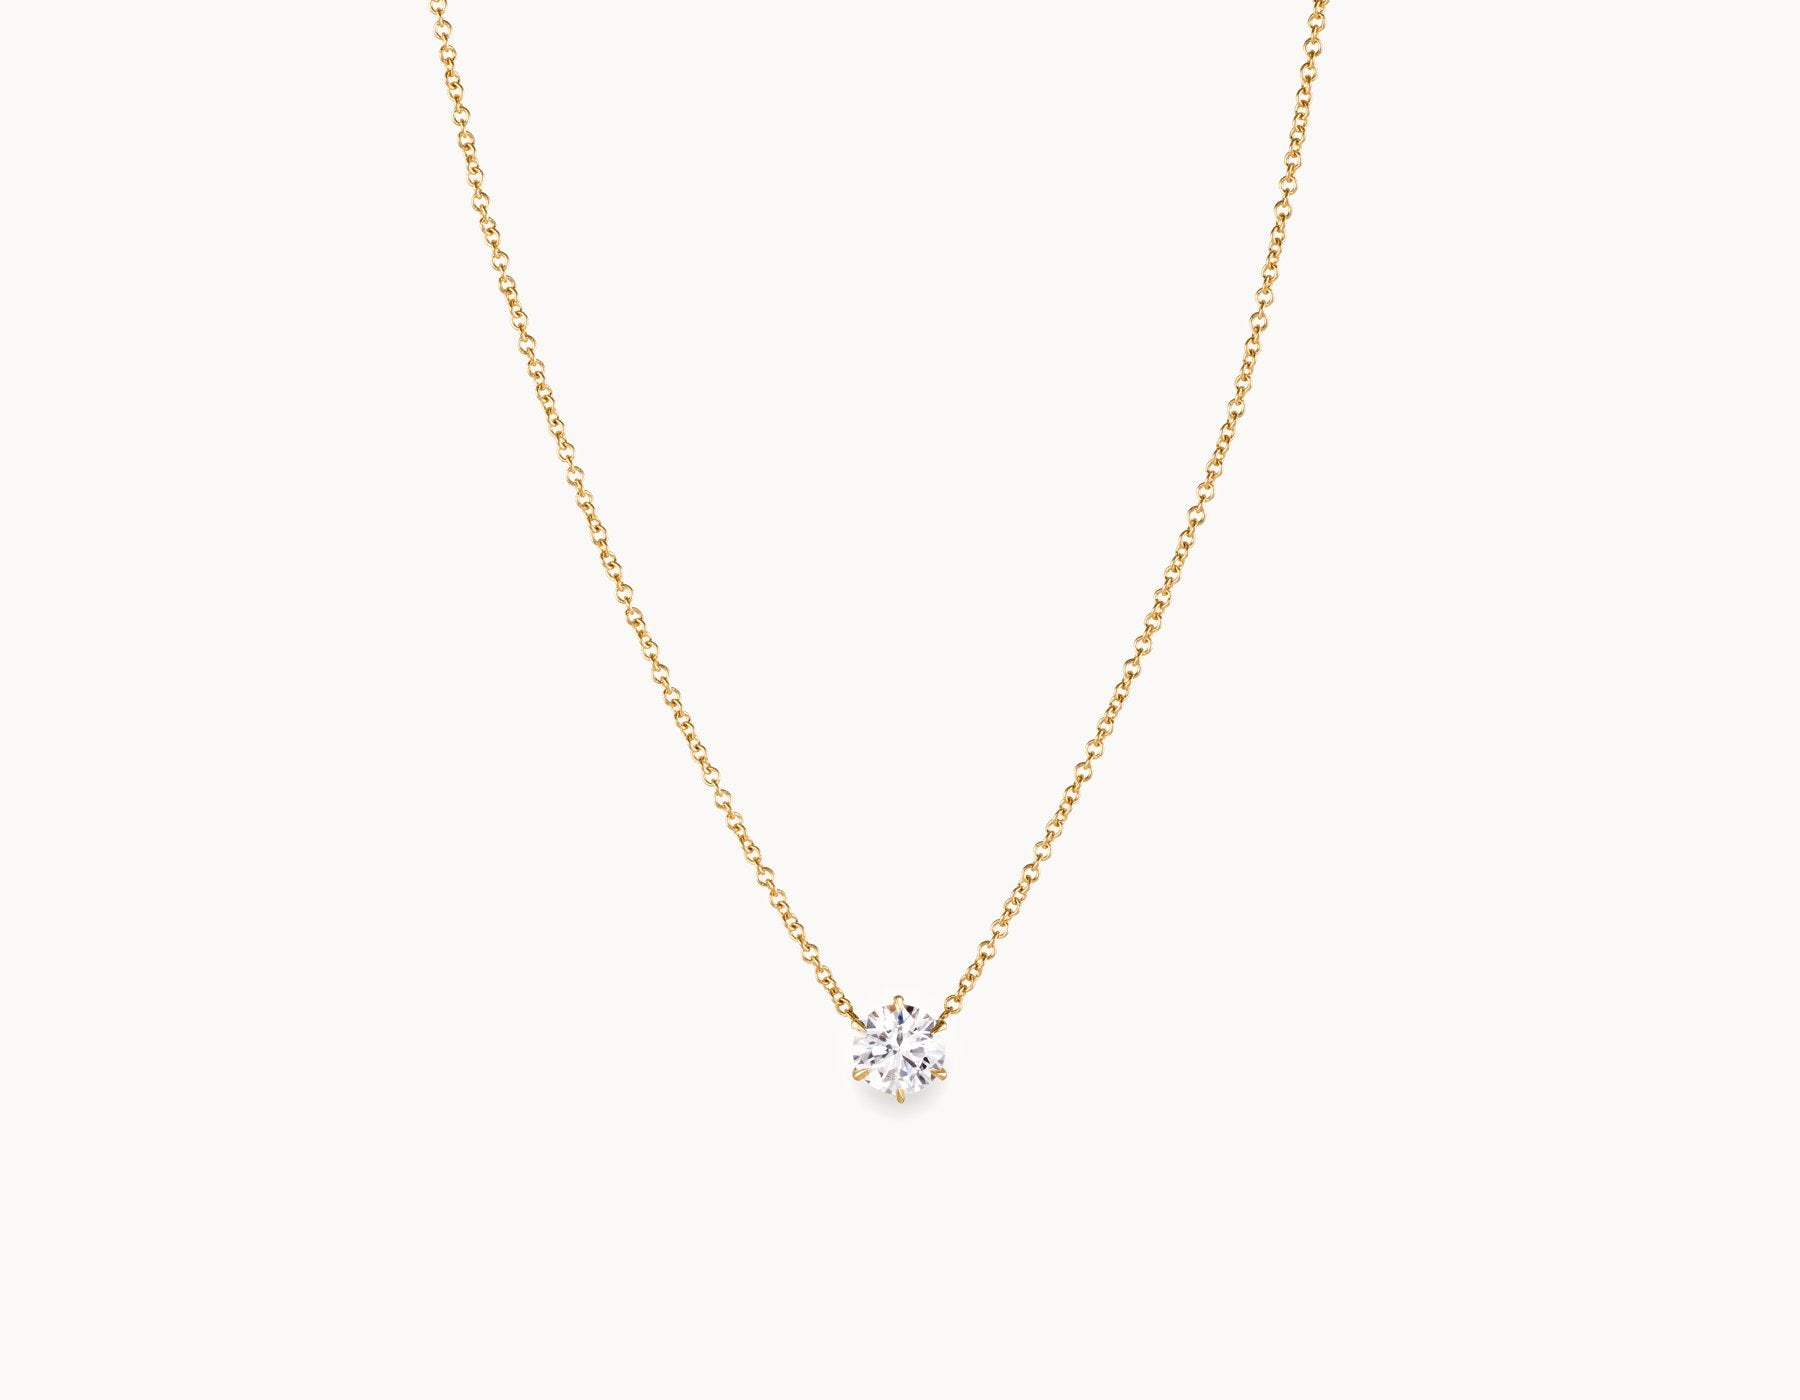 diamond pendant cut rsp johnlewis necklace main gold online at princess buymogul mogul white pdp solitaire